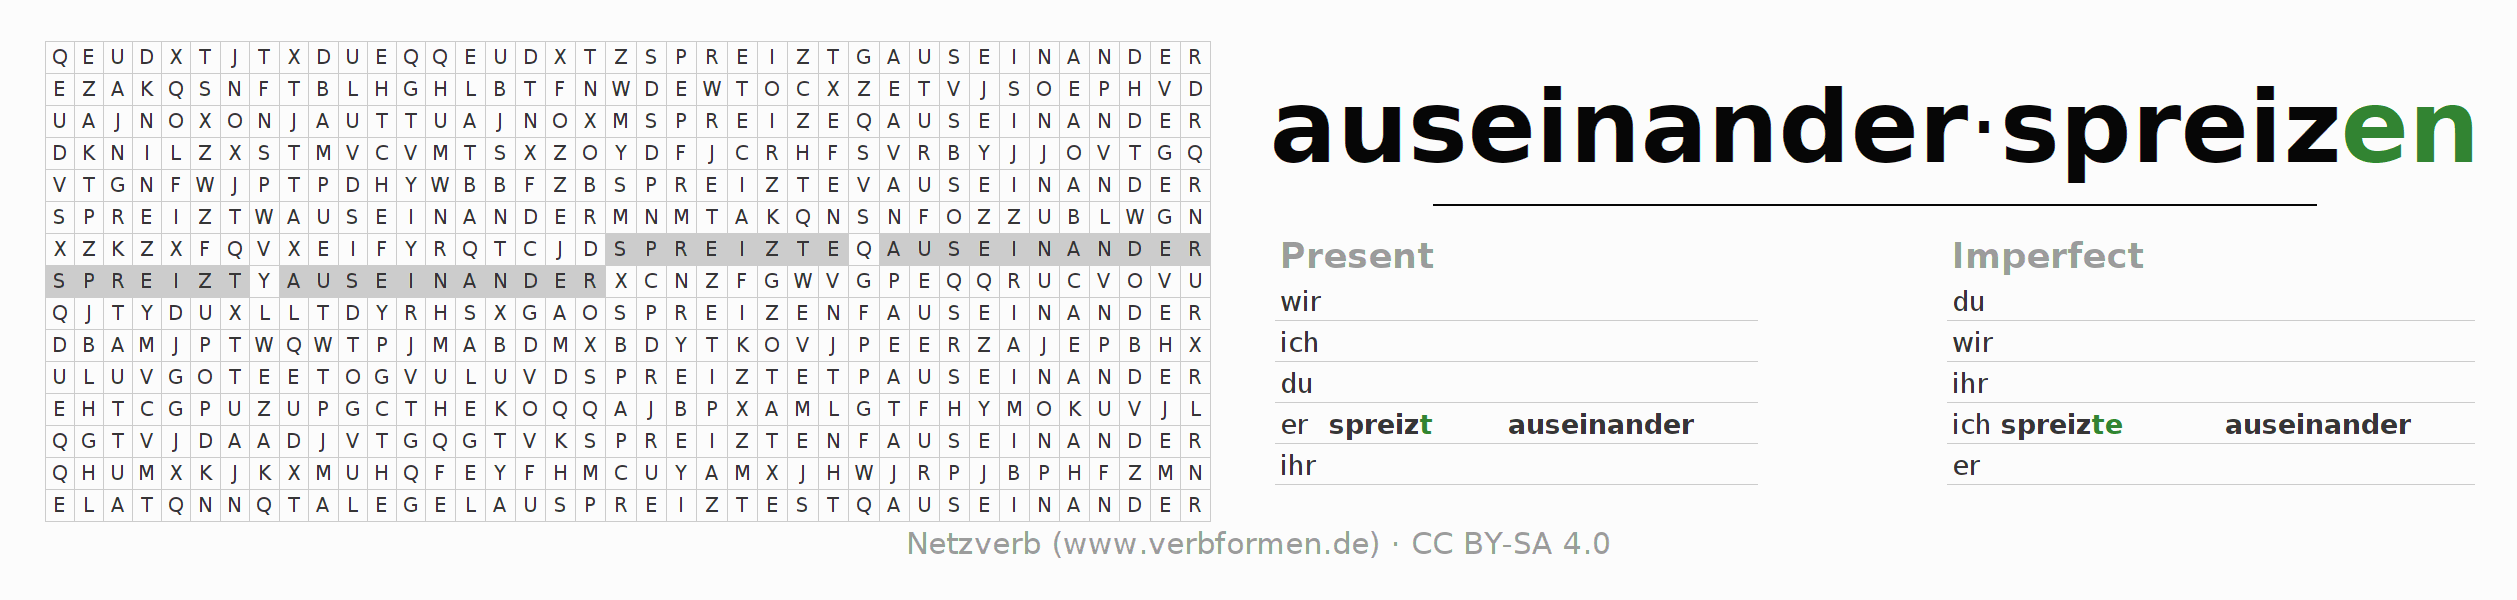 Word search puzzle for the conjugation of the verb auseinanderspreizen